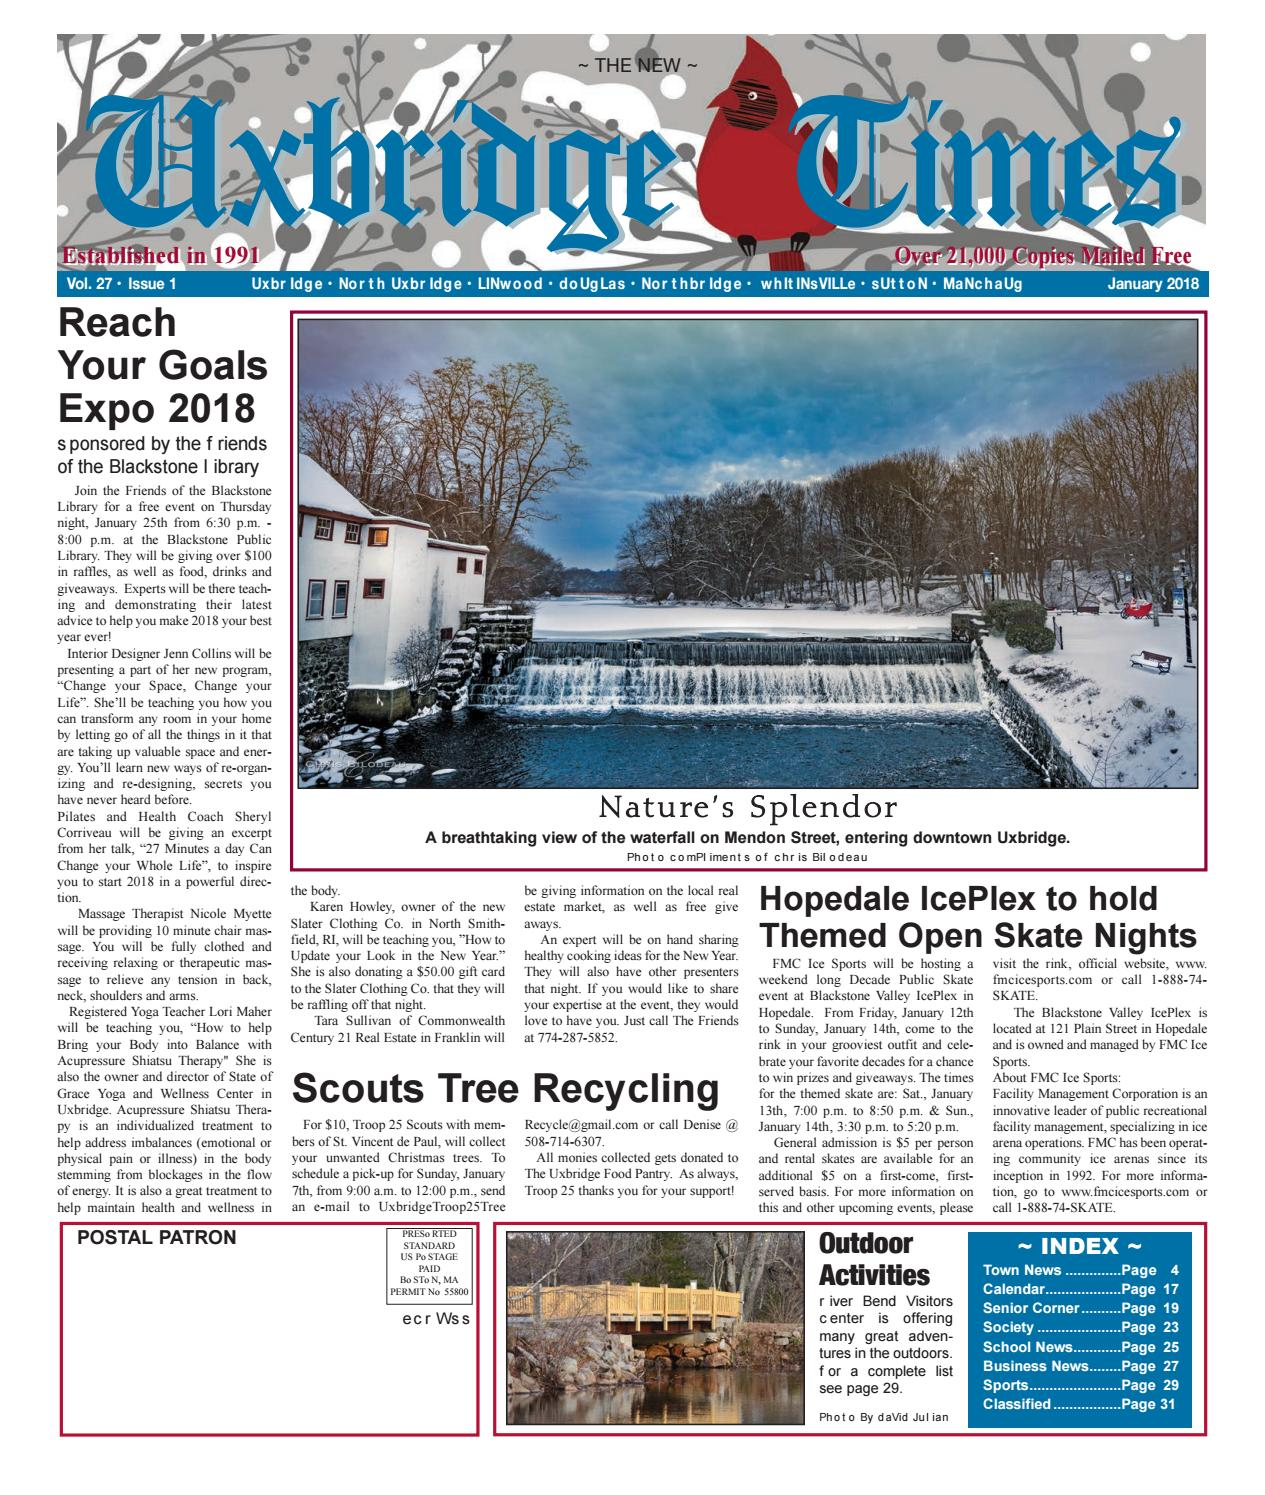 The New Uxbridge Times - January, 2018 by The New Uxbridge Times - issuu